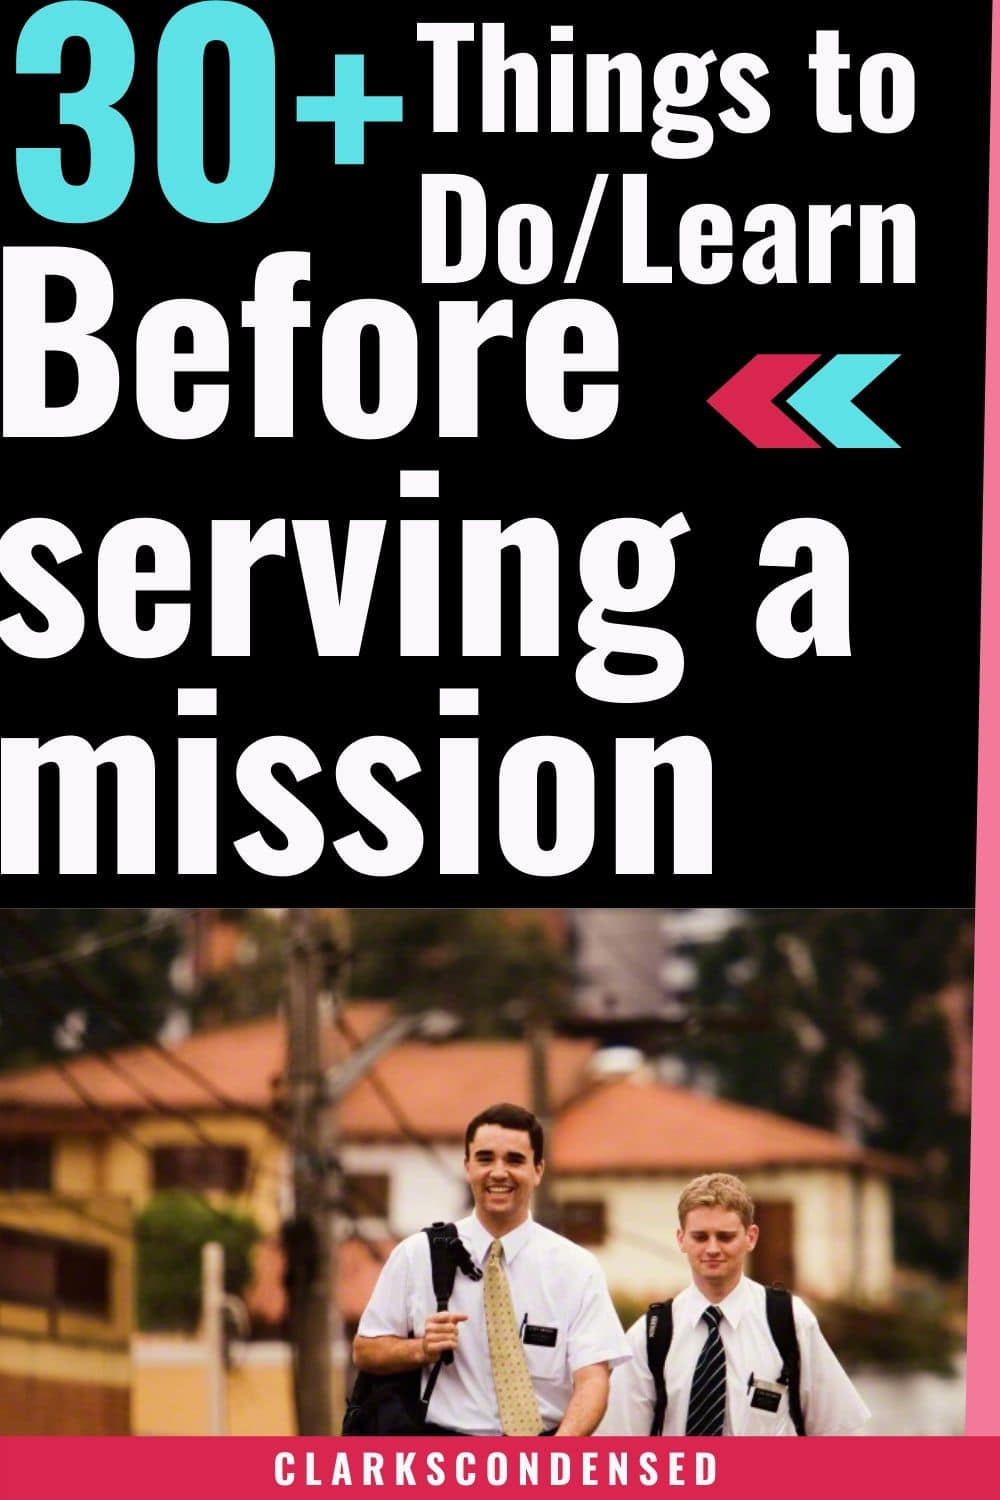 30+ Things to do/learn before serving a mission for the Church of Jesus Christ of Latter-day Saints / LDS Missionary List via @clarkscondensed